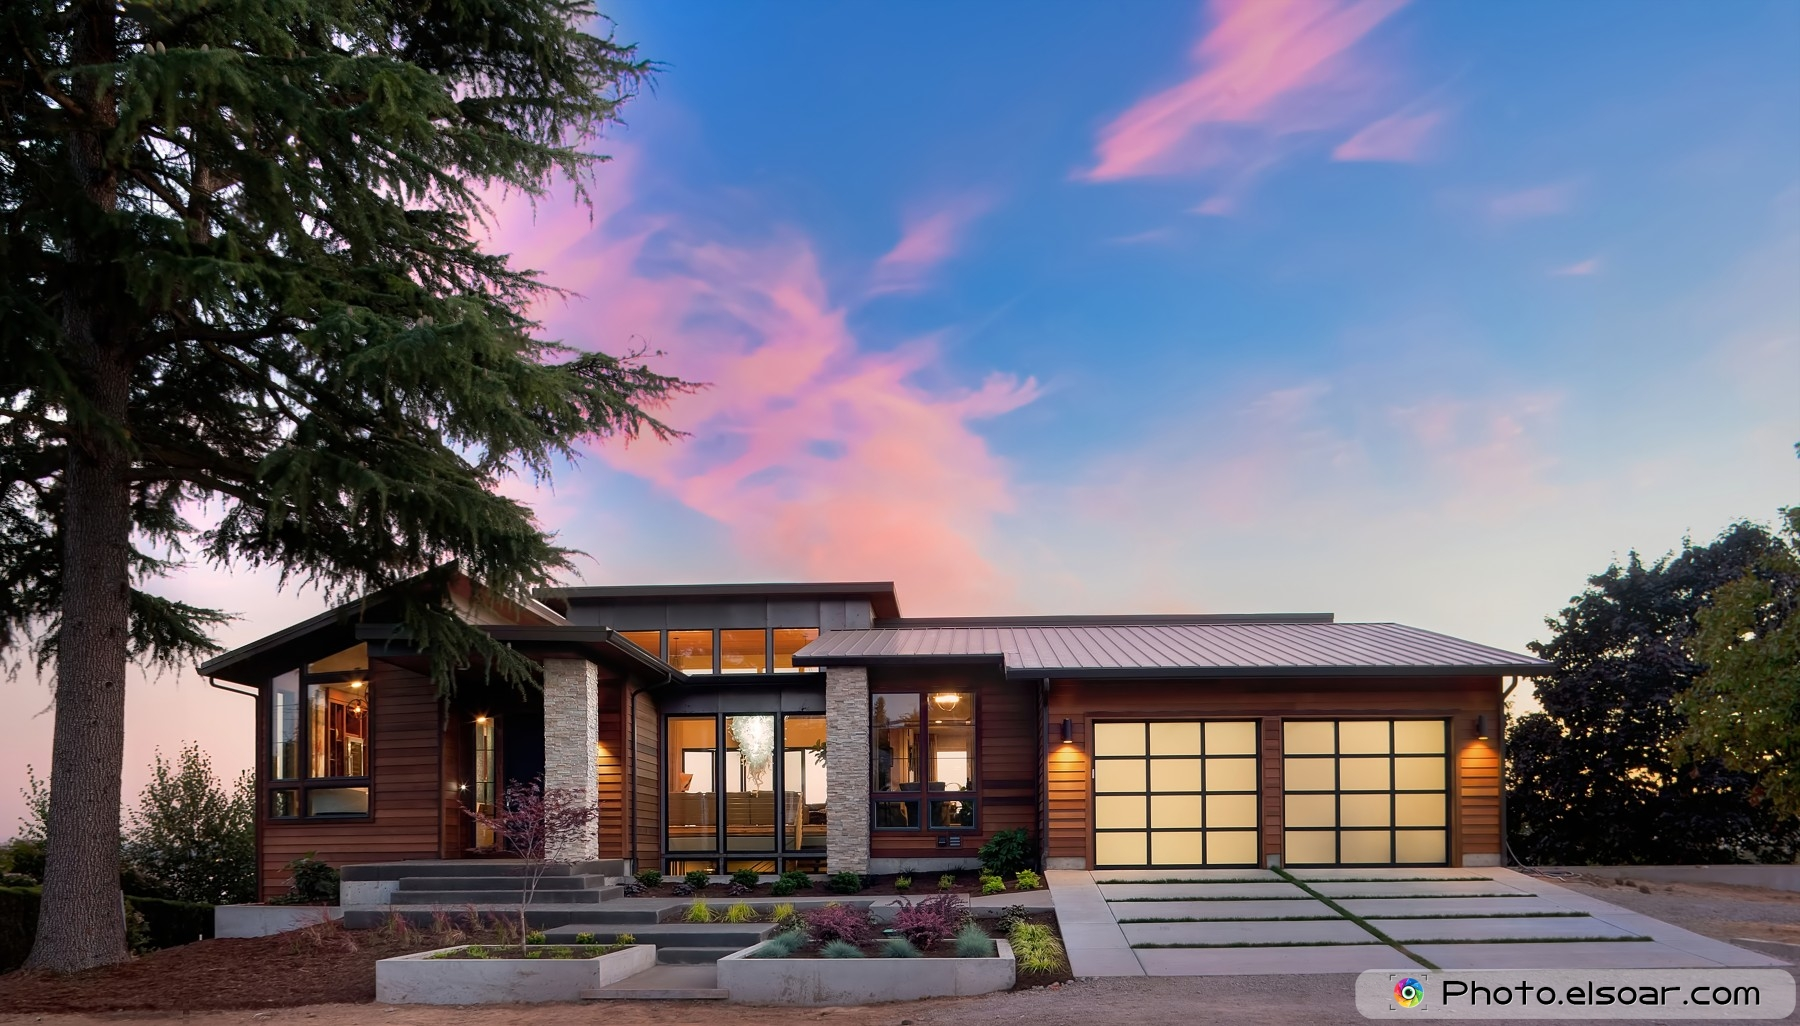 The 25 Most Amazing Exterior Design Ideas with HQ Pictures • Elsoar